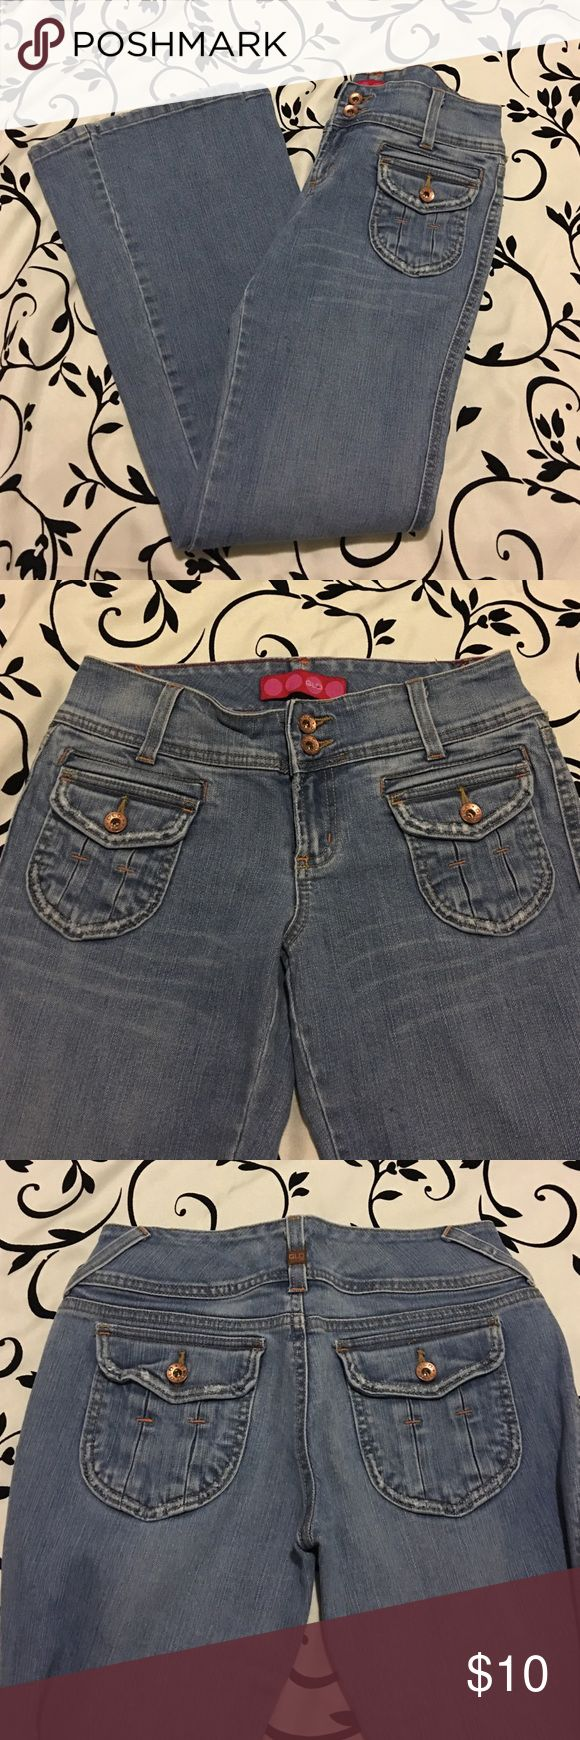 """Flo Light Denim Jeans ; Size 5 Flo Light Denim Jeans ; Size 5 (size 28); Previously worn; no stains or tears; waist 28"""" , front rise7.5""""; inseam 33""""; leg opening 10"""" Glo Jeans"""